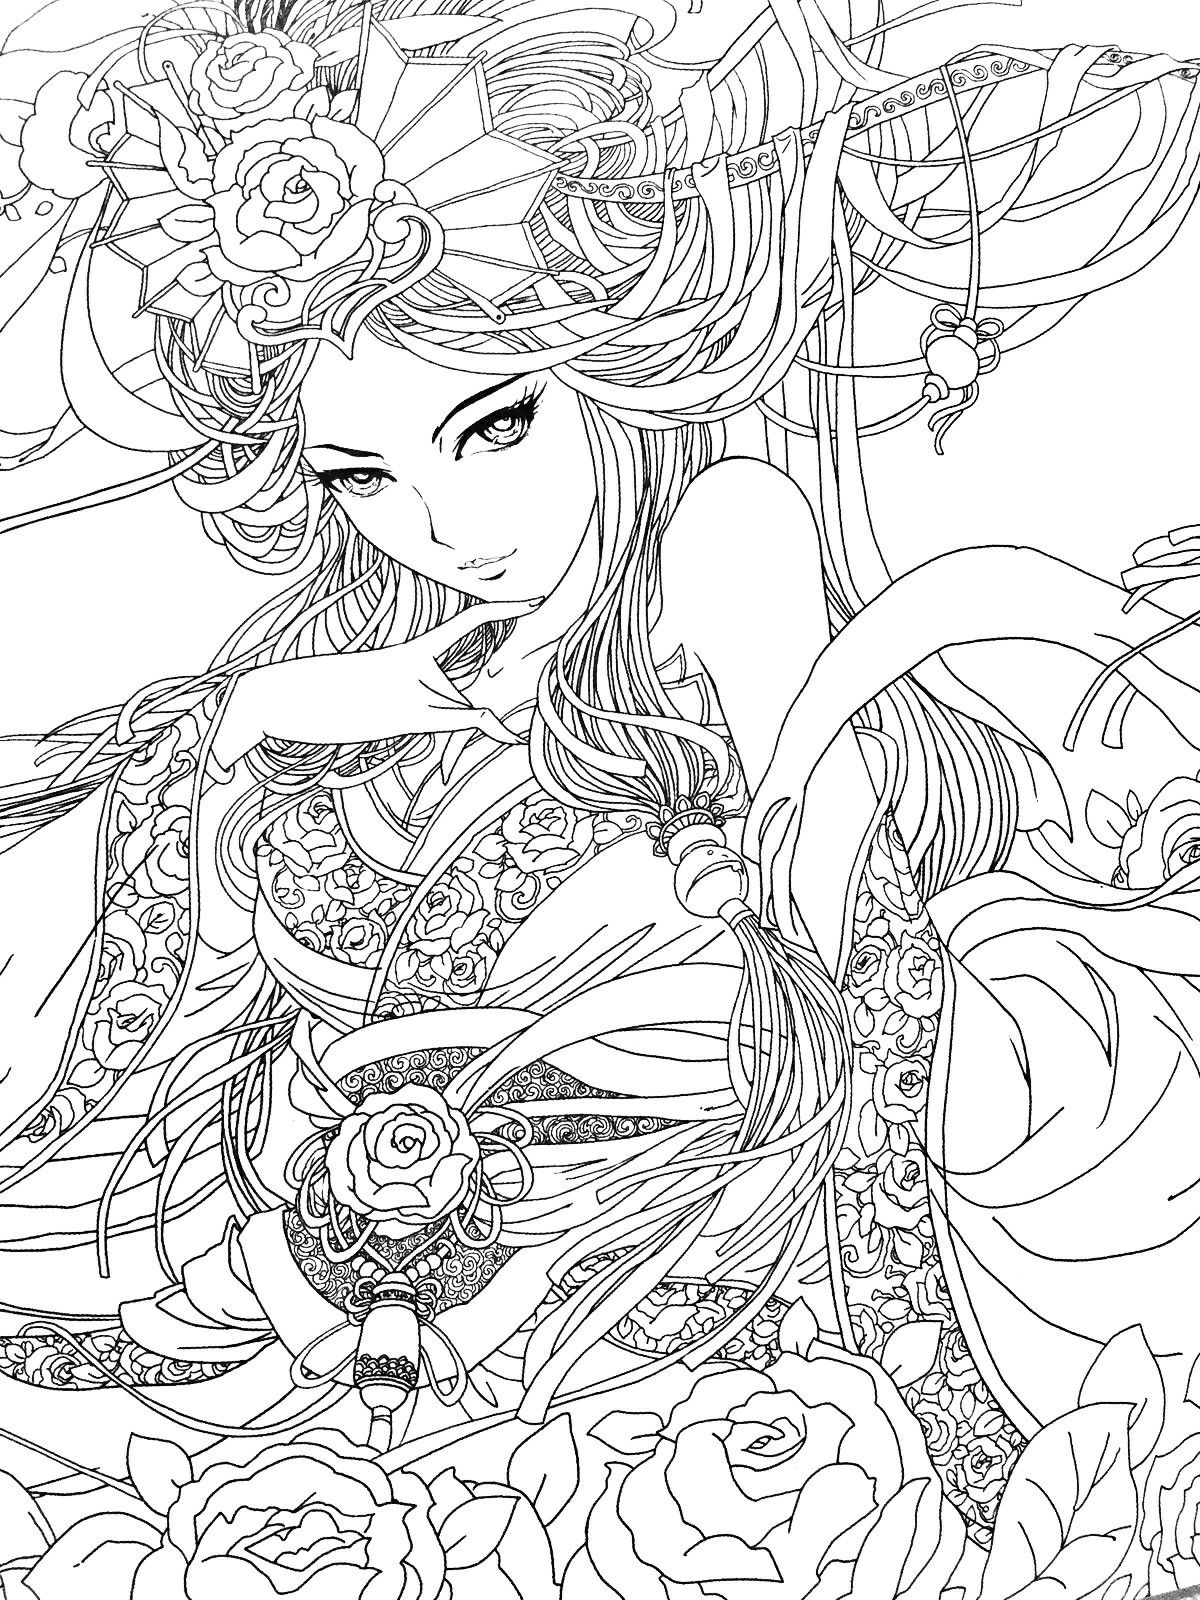 Pin By Marie Christine Alary On Color Her Pretty Coloring Books Coloring Pages Fairy Coloring Pages [ 1600 x 1200 Pixel ]